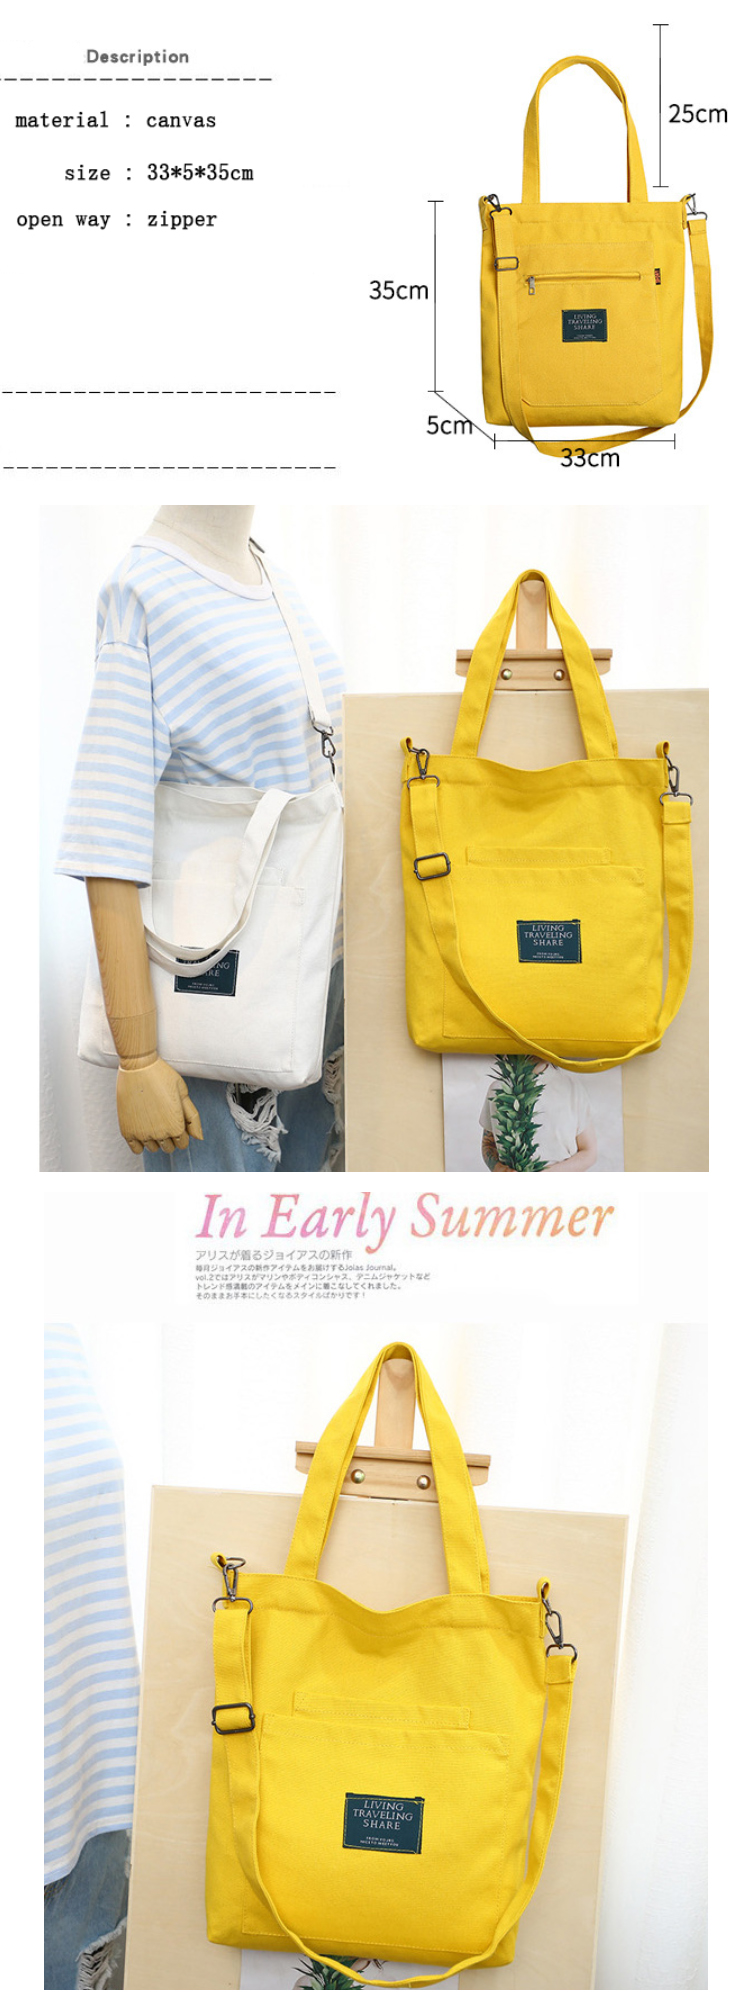 Osgoodway2 Online Hot Selling Yellow Fashion Canvas Shoulder Shopping Bag Handbag Women